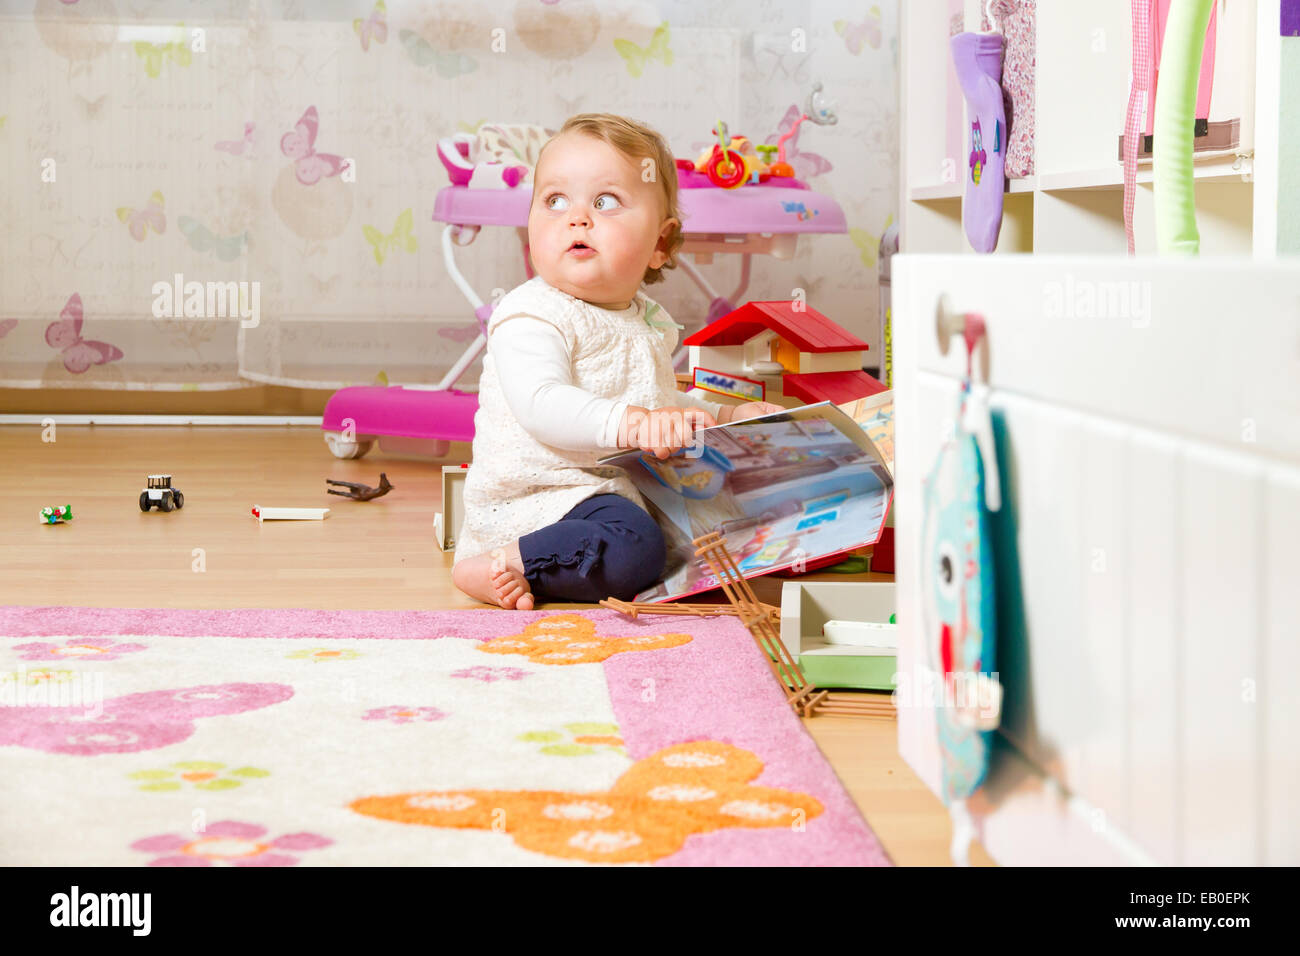 Happy, curious baby at home - Stock Image